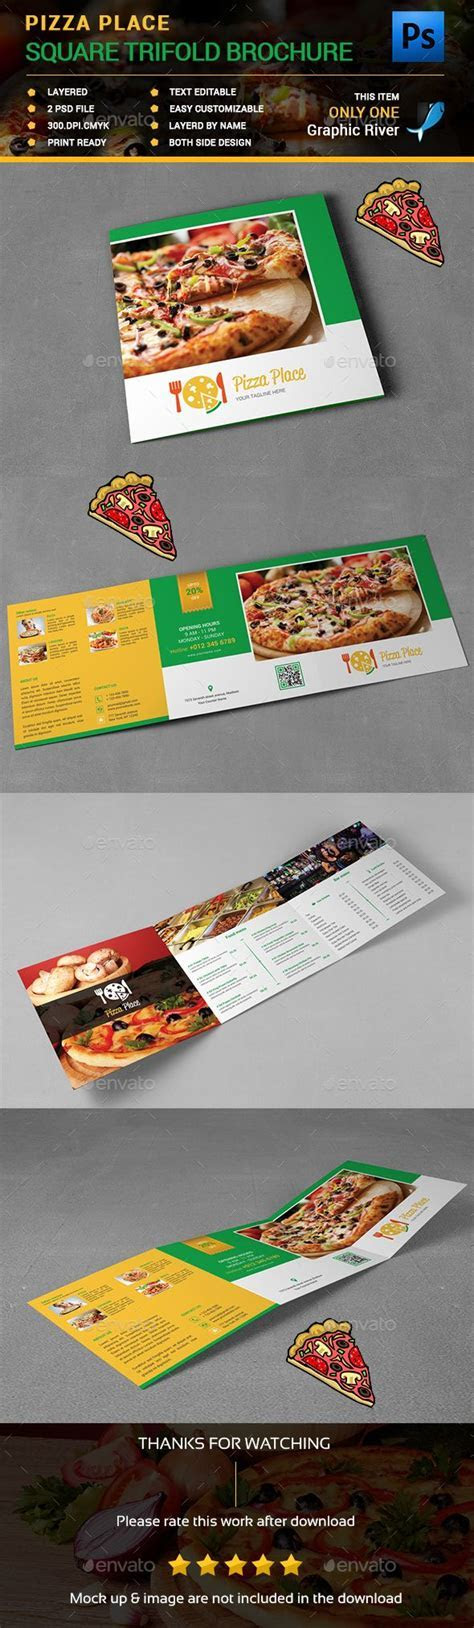 1000  ideas about Pizza Menu on Pinterest   Pizza menu